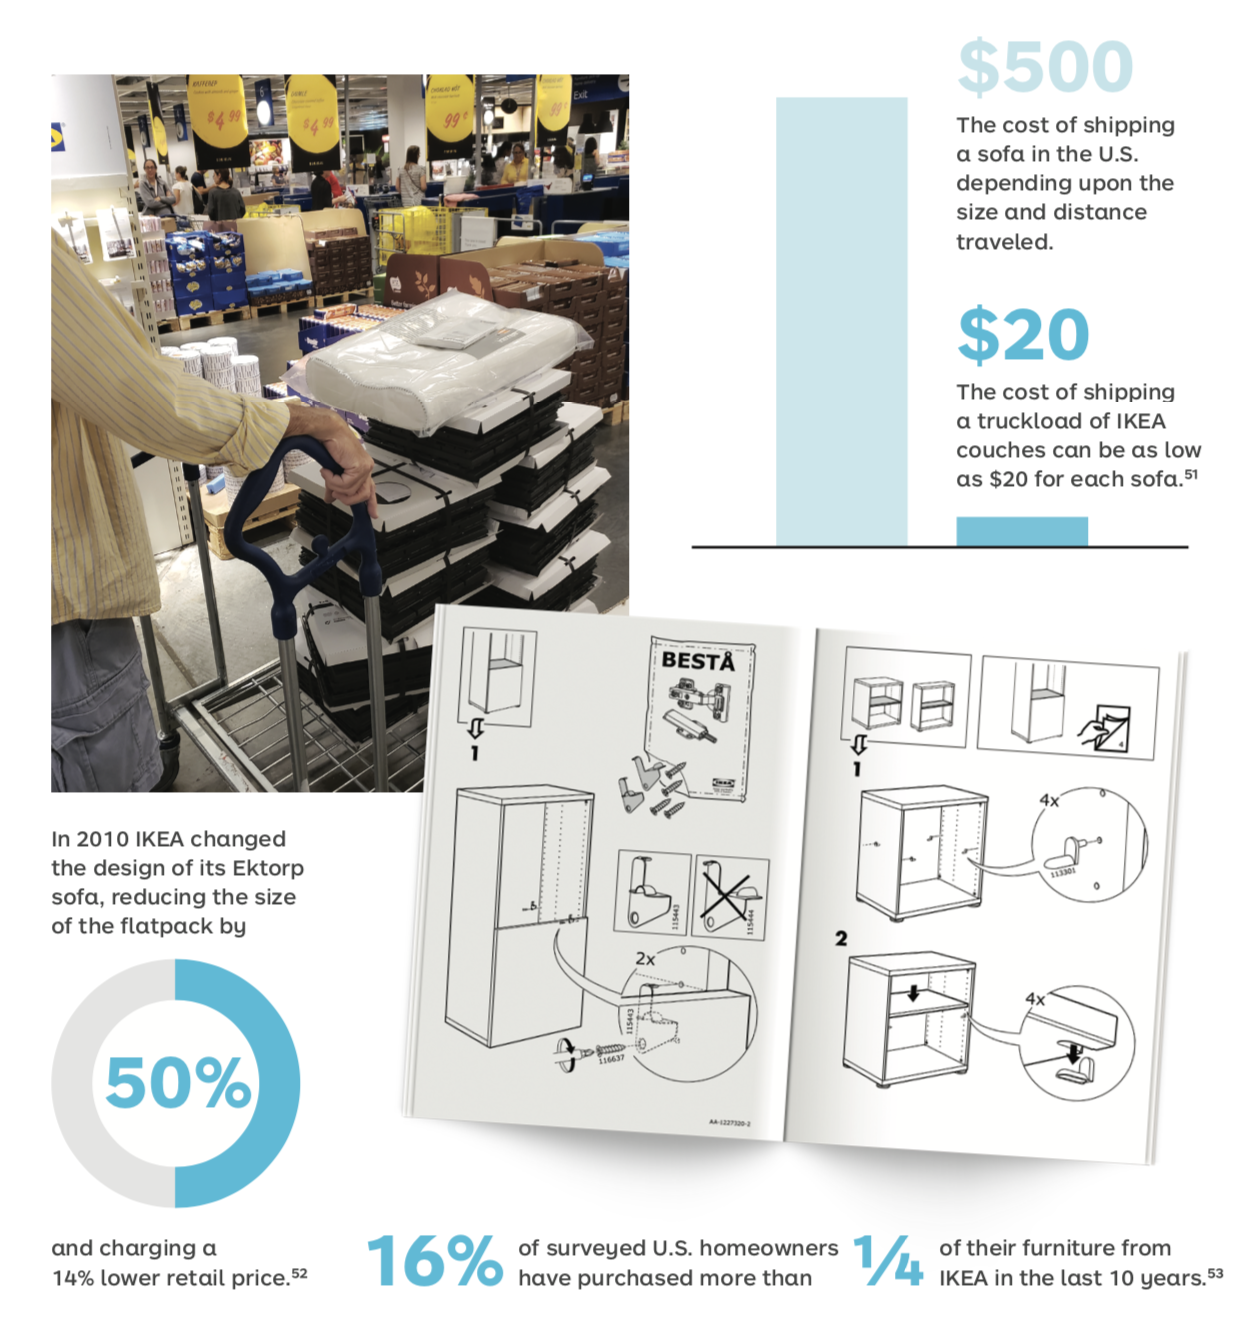 Ikea Fun Facts - Business Model